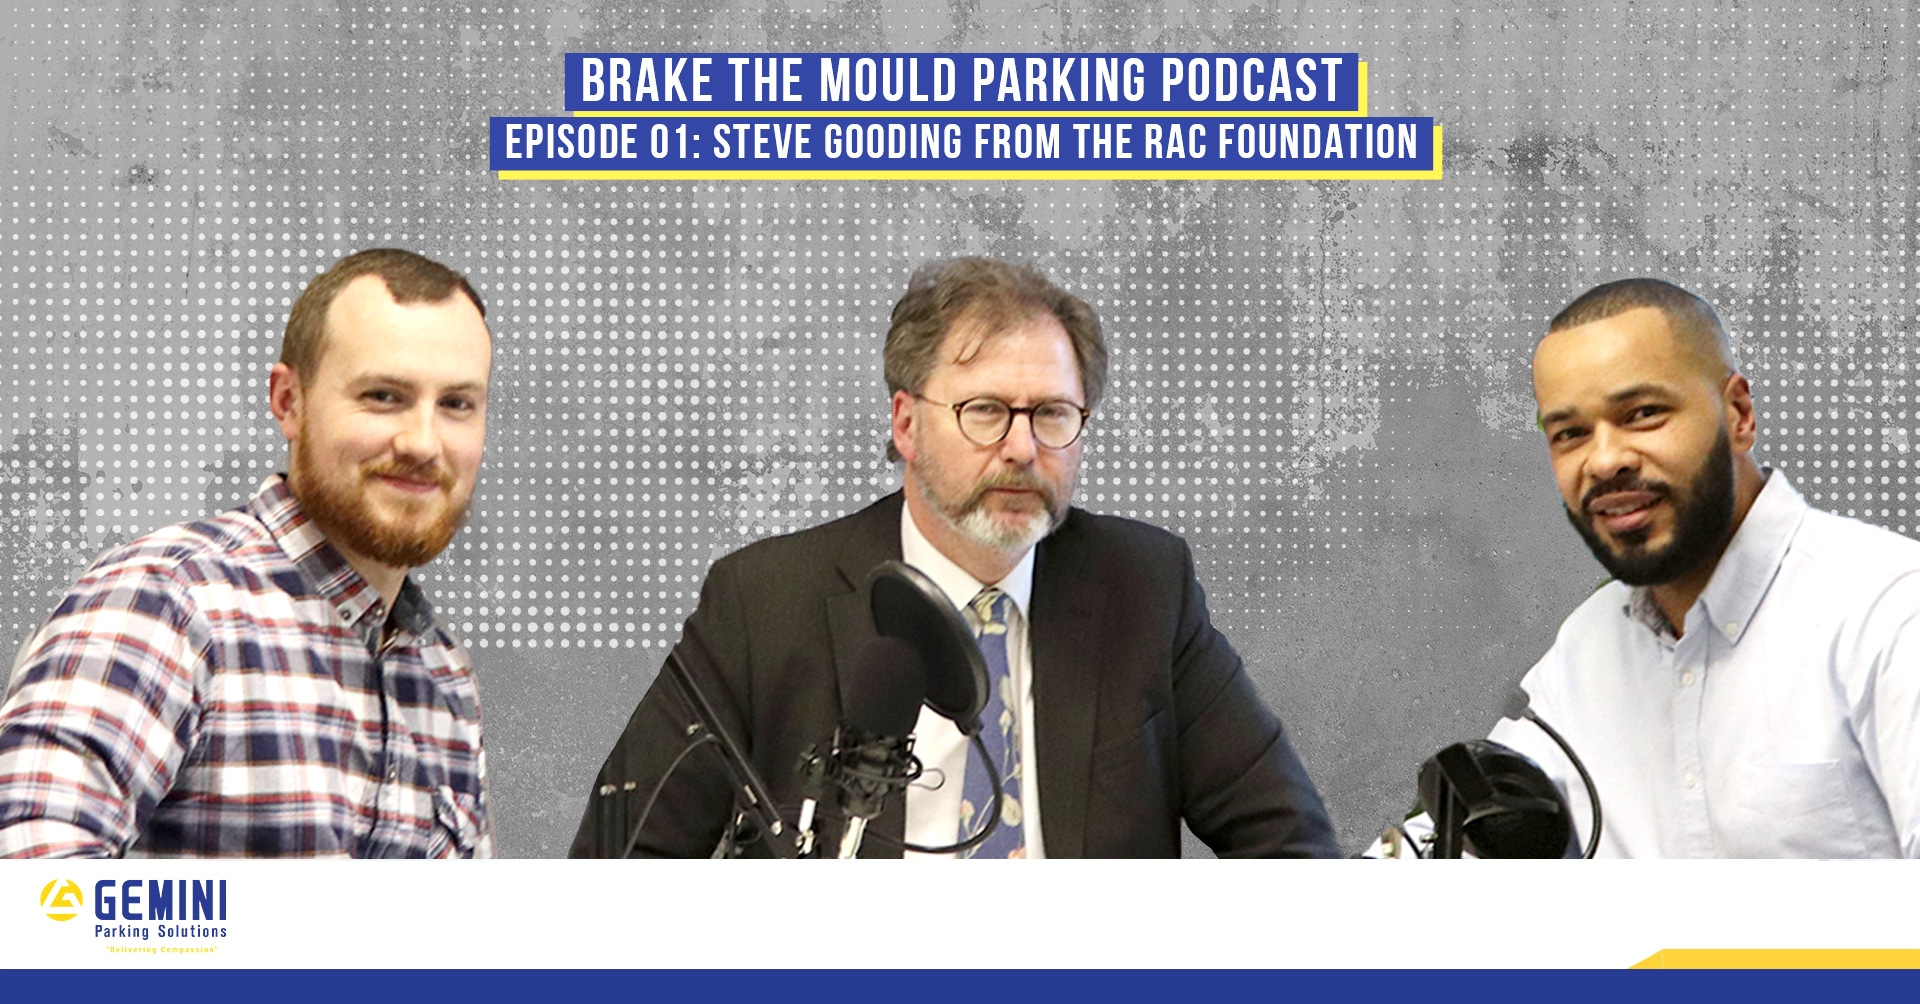 Brake The Mould Parking Podcast with Steve Gooding from the RAC Foundation